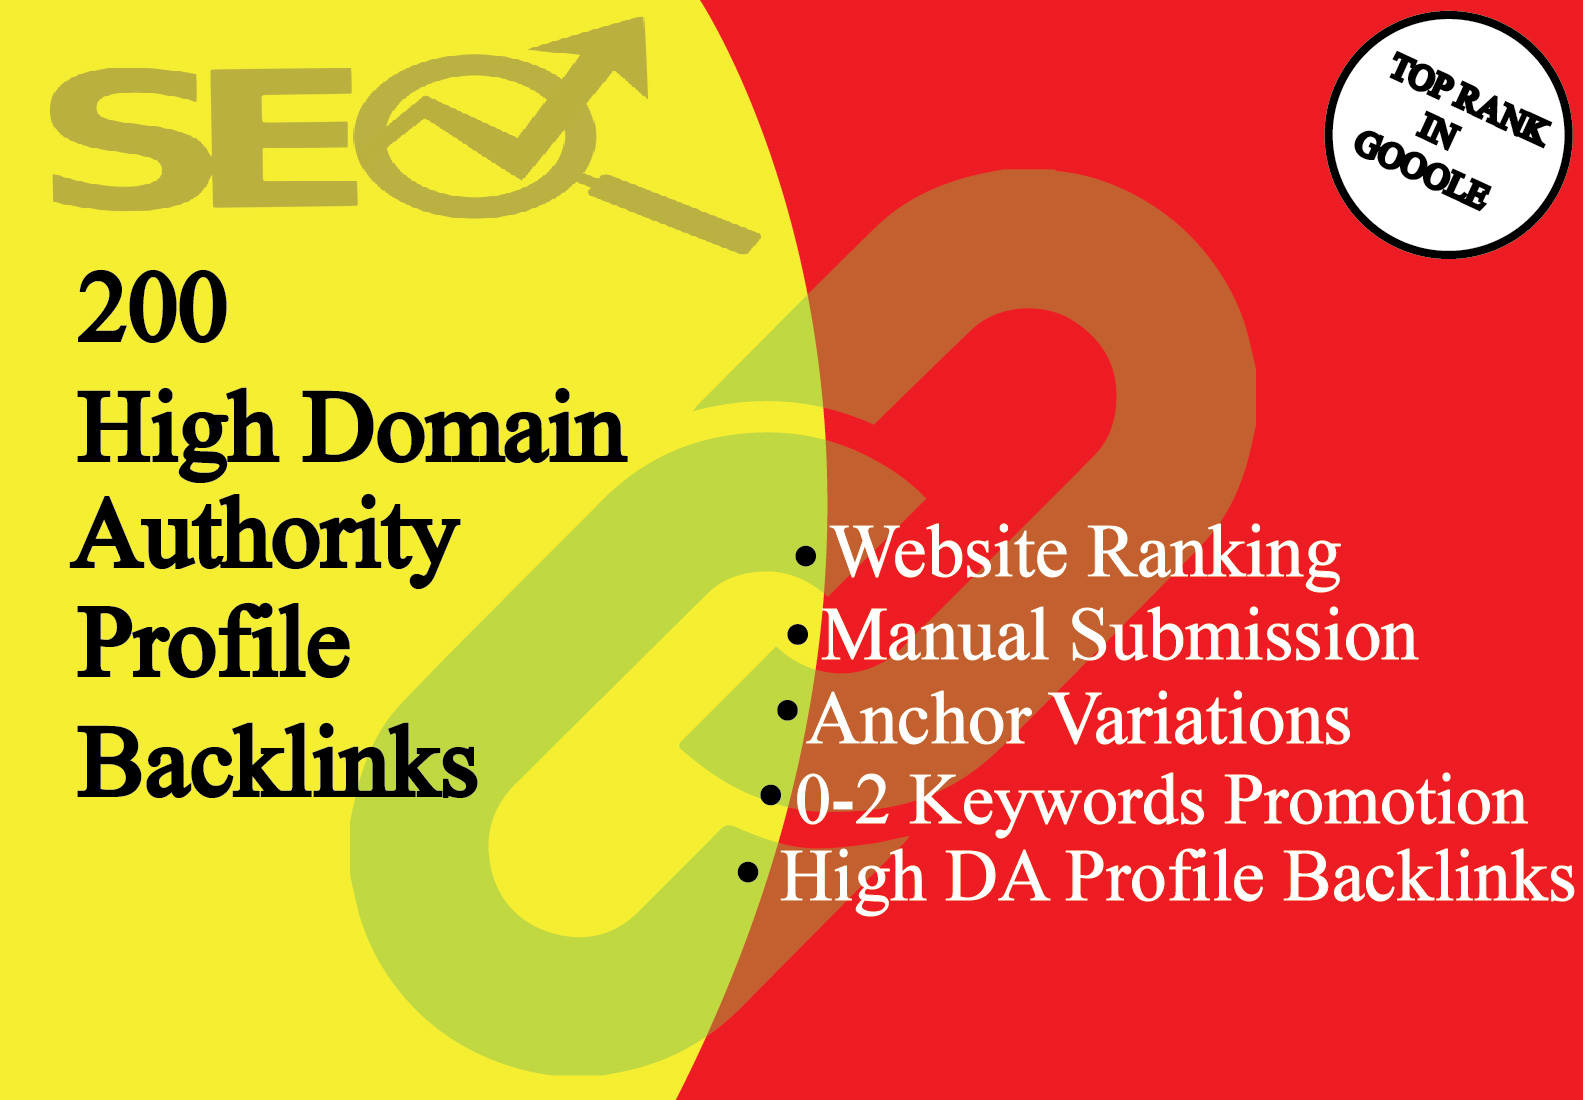 I Will Create 200 Manually High Quality Profile Backlink With High DA Sites For SEO Ranking